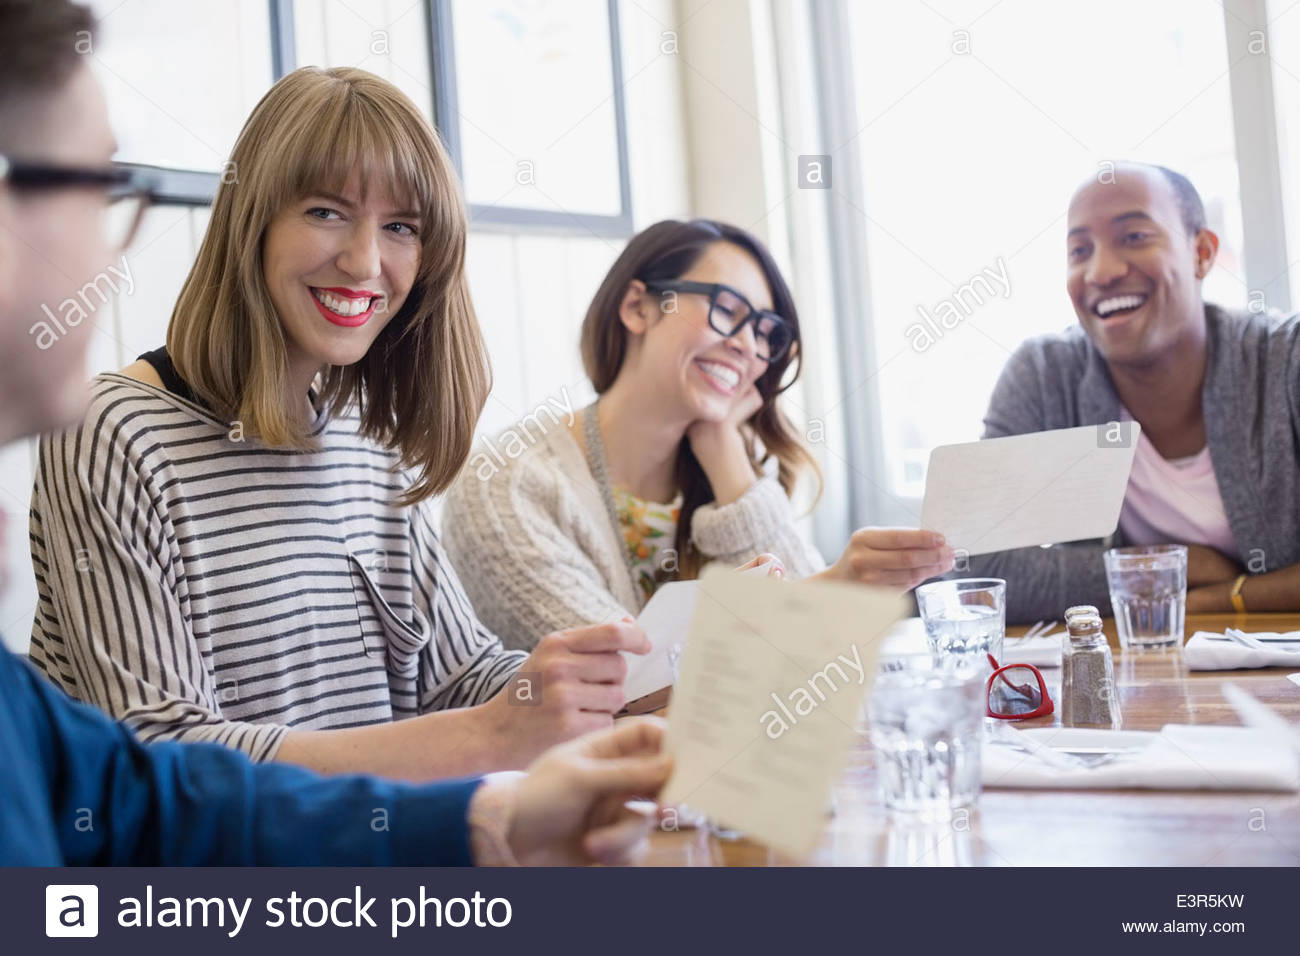 Friends looking at menus at bistro table - Stock Image